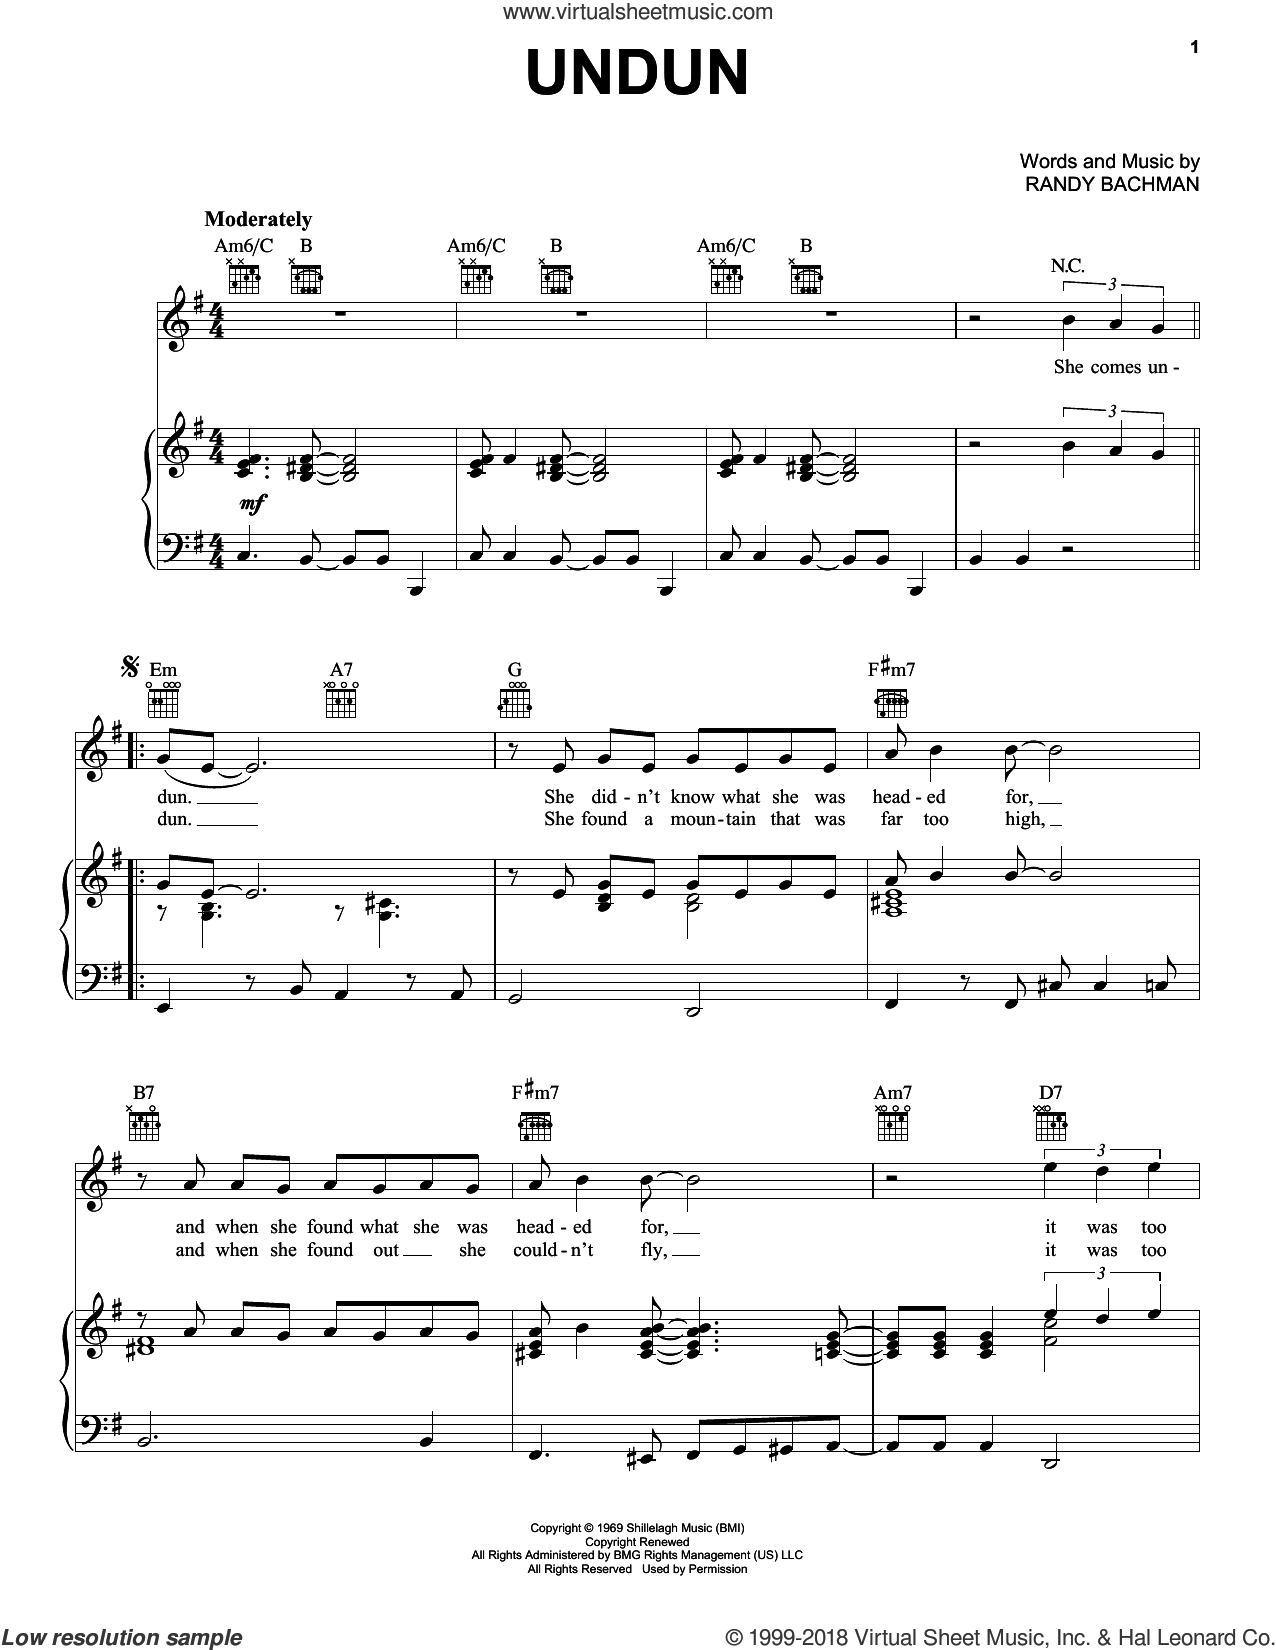 Undun sheet music for voice, piano or guitar by The Guess Who, intermediate voice, piano or guitar. Score Image Preview.